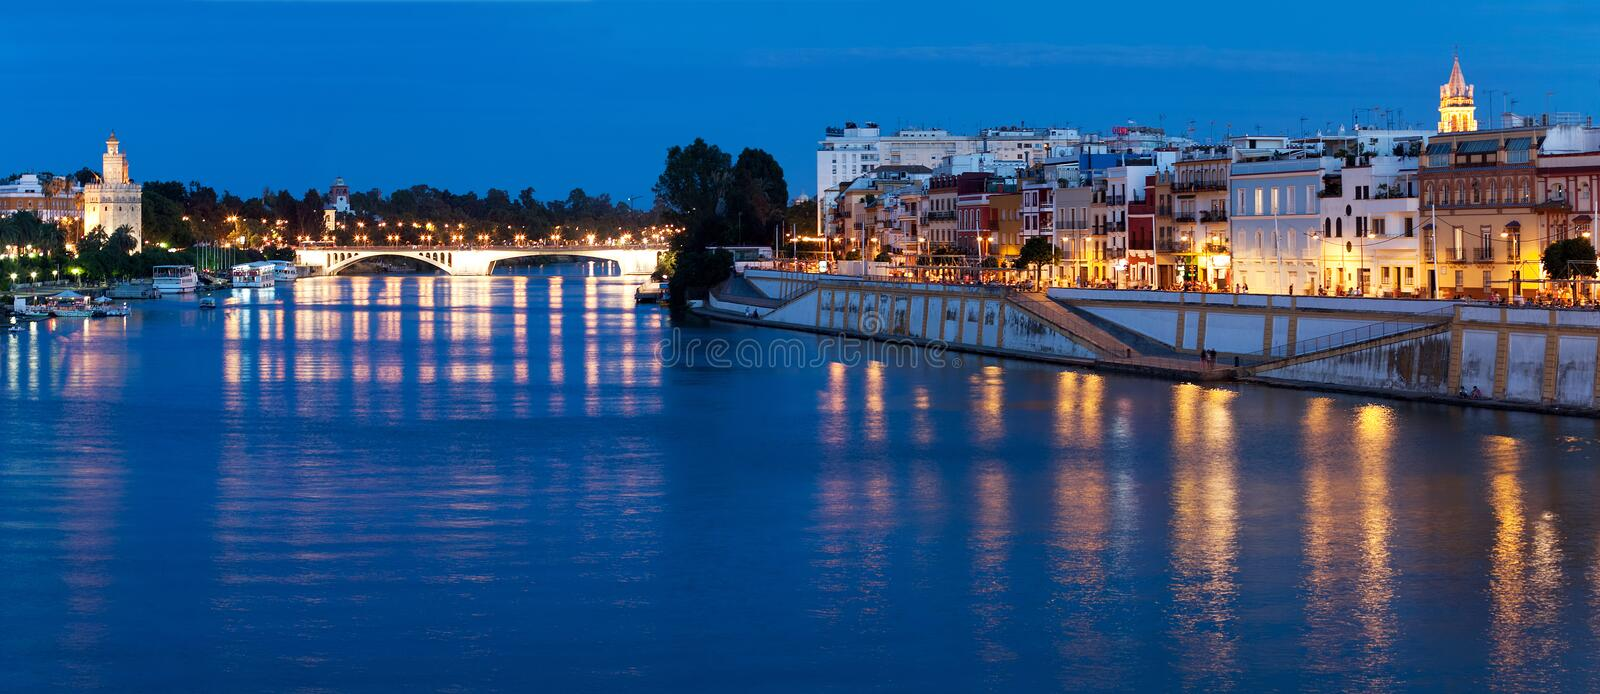 Embankment of Sevilla, Guadalquivir river, Spain. Embankment of Sevilla, Guadalquivir river royalty free stock images